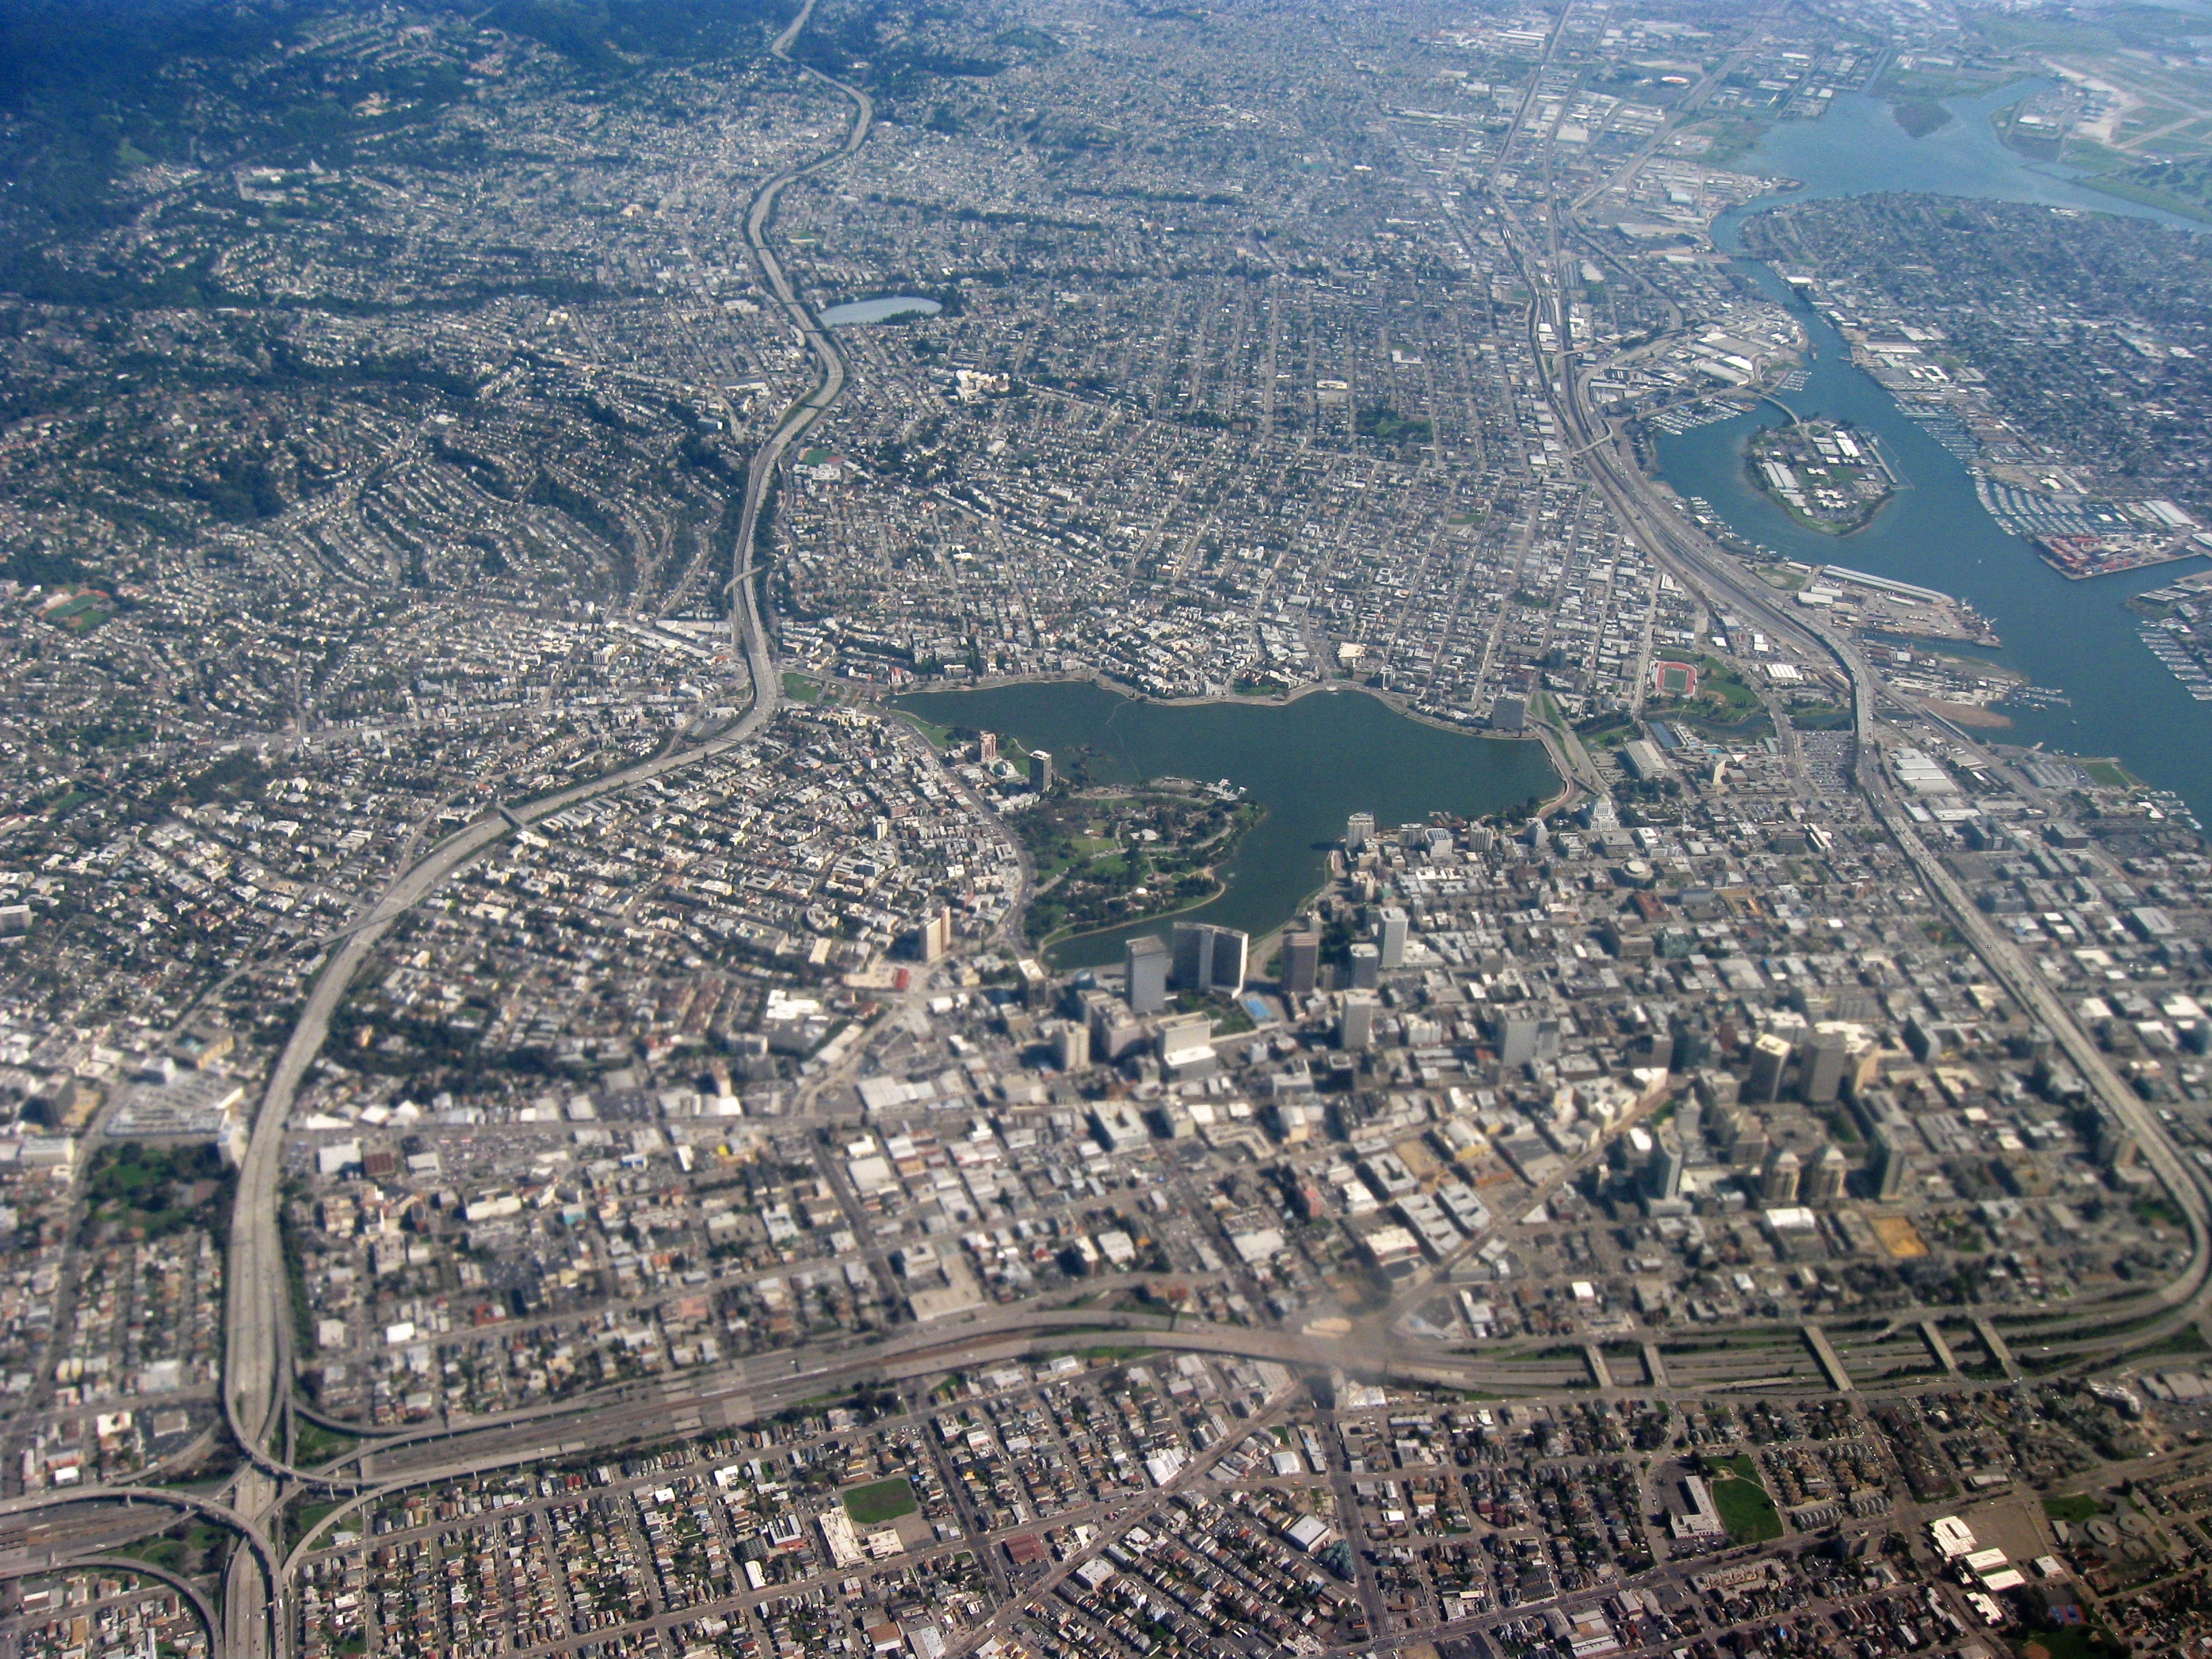 FileAerial View Of City Of Oakland 1jpg Wikimedia Commons